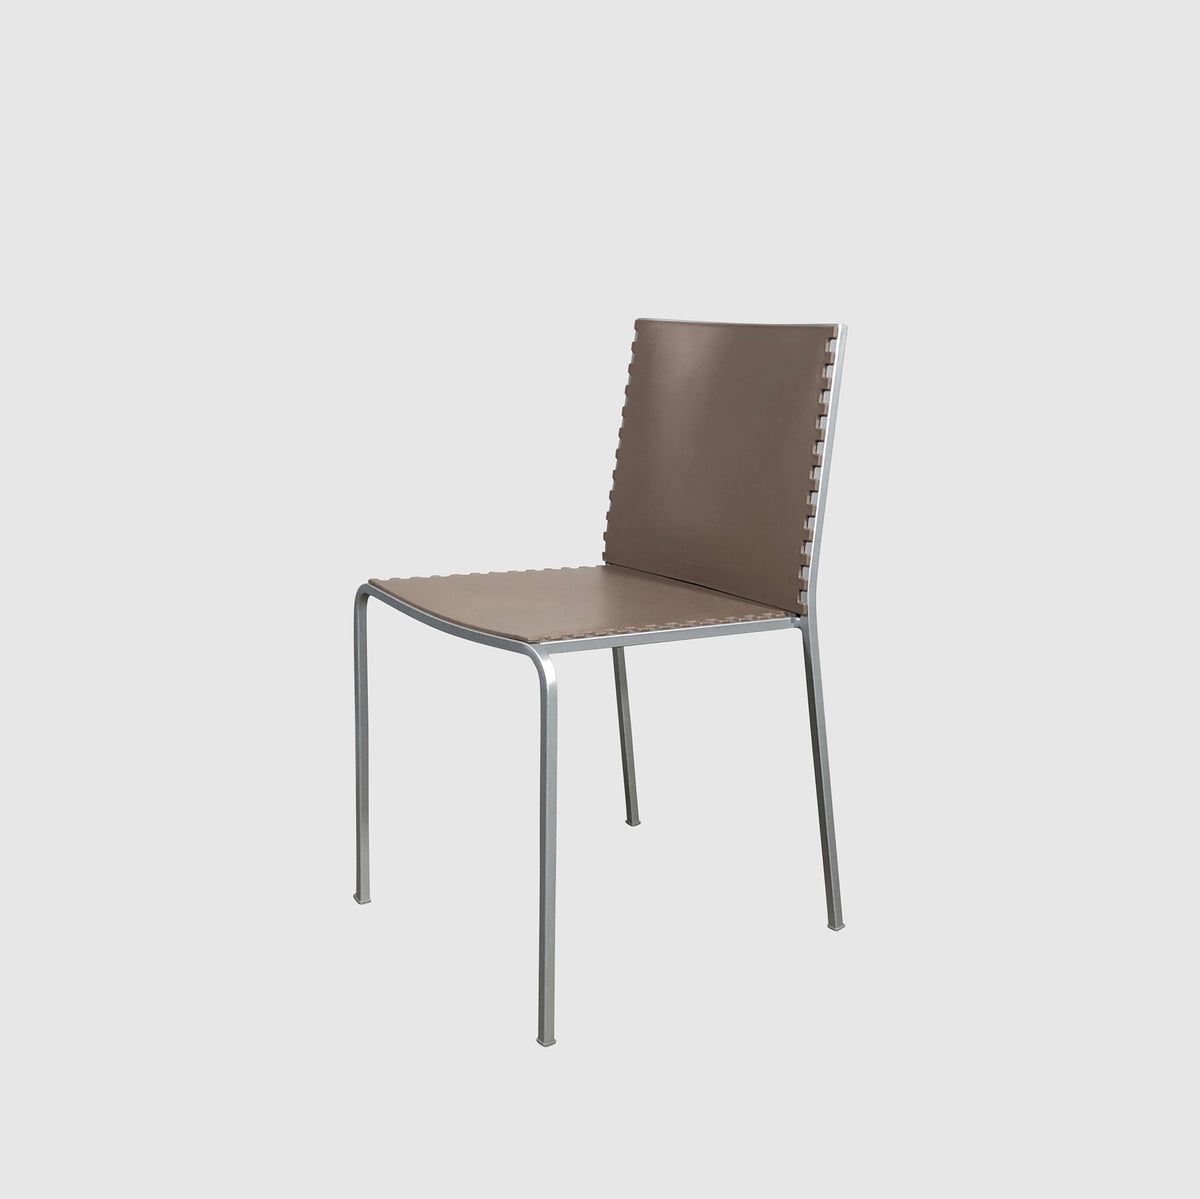 Desalto Zip Dining Taupe/Brown Chair by Marco Maran (8 in stock)